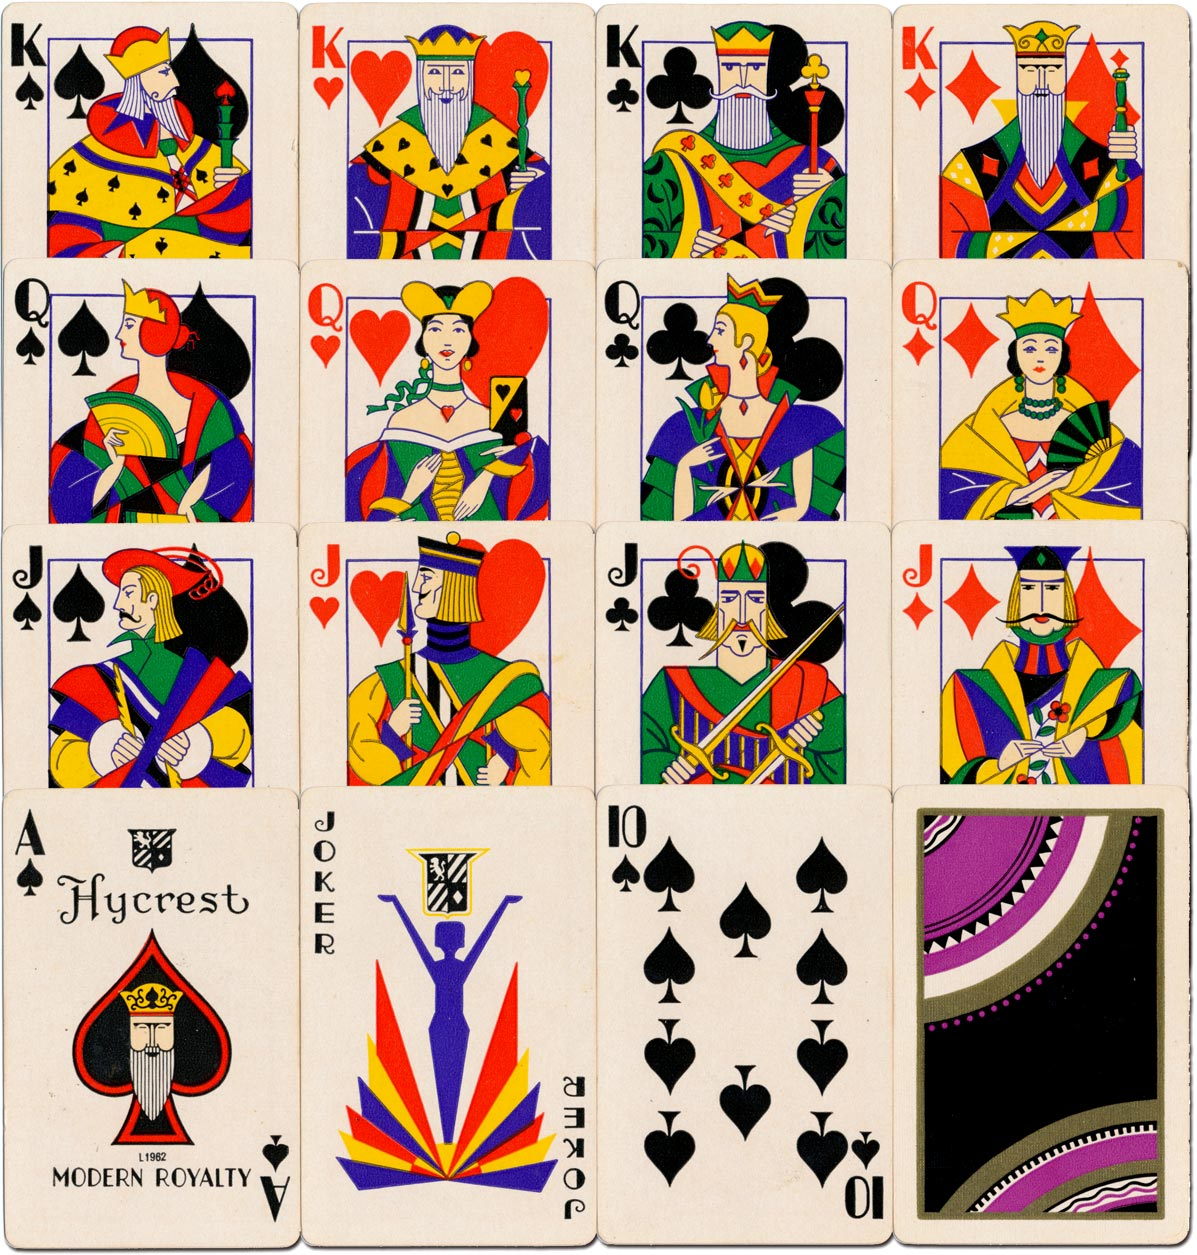 'Modern Royalty' playing cards published by the Hycrest Playing Card Co., New York, c.1931